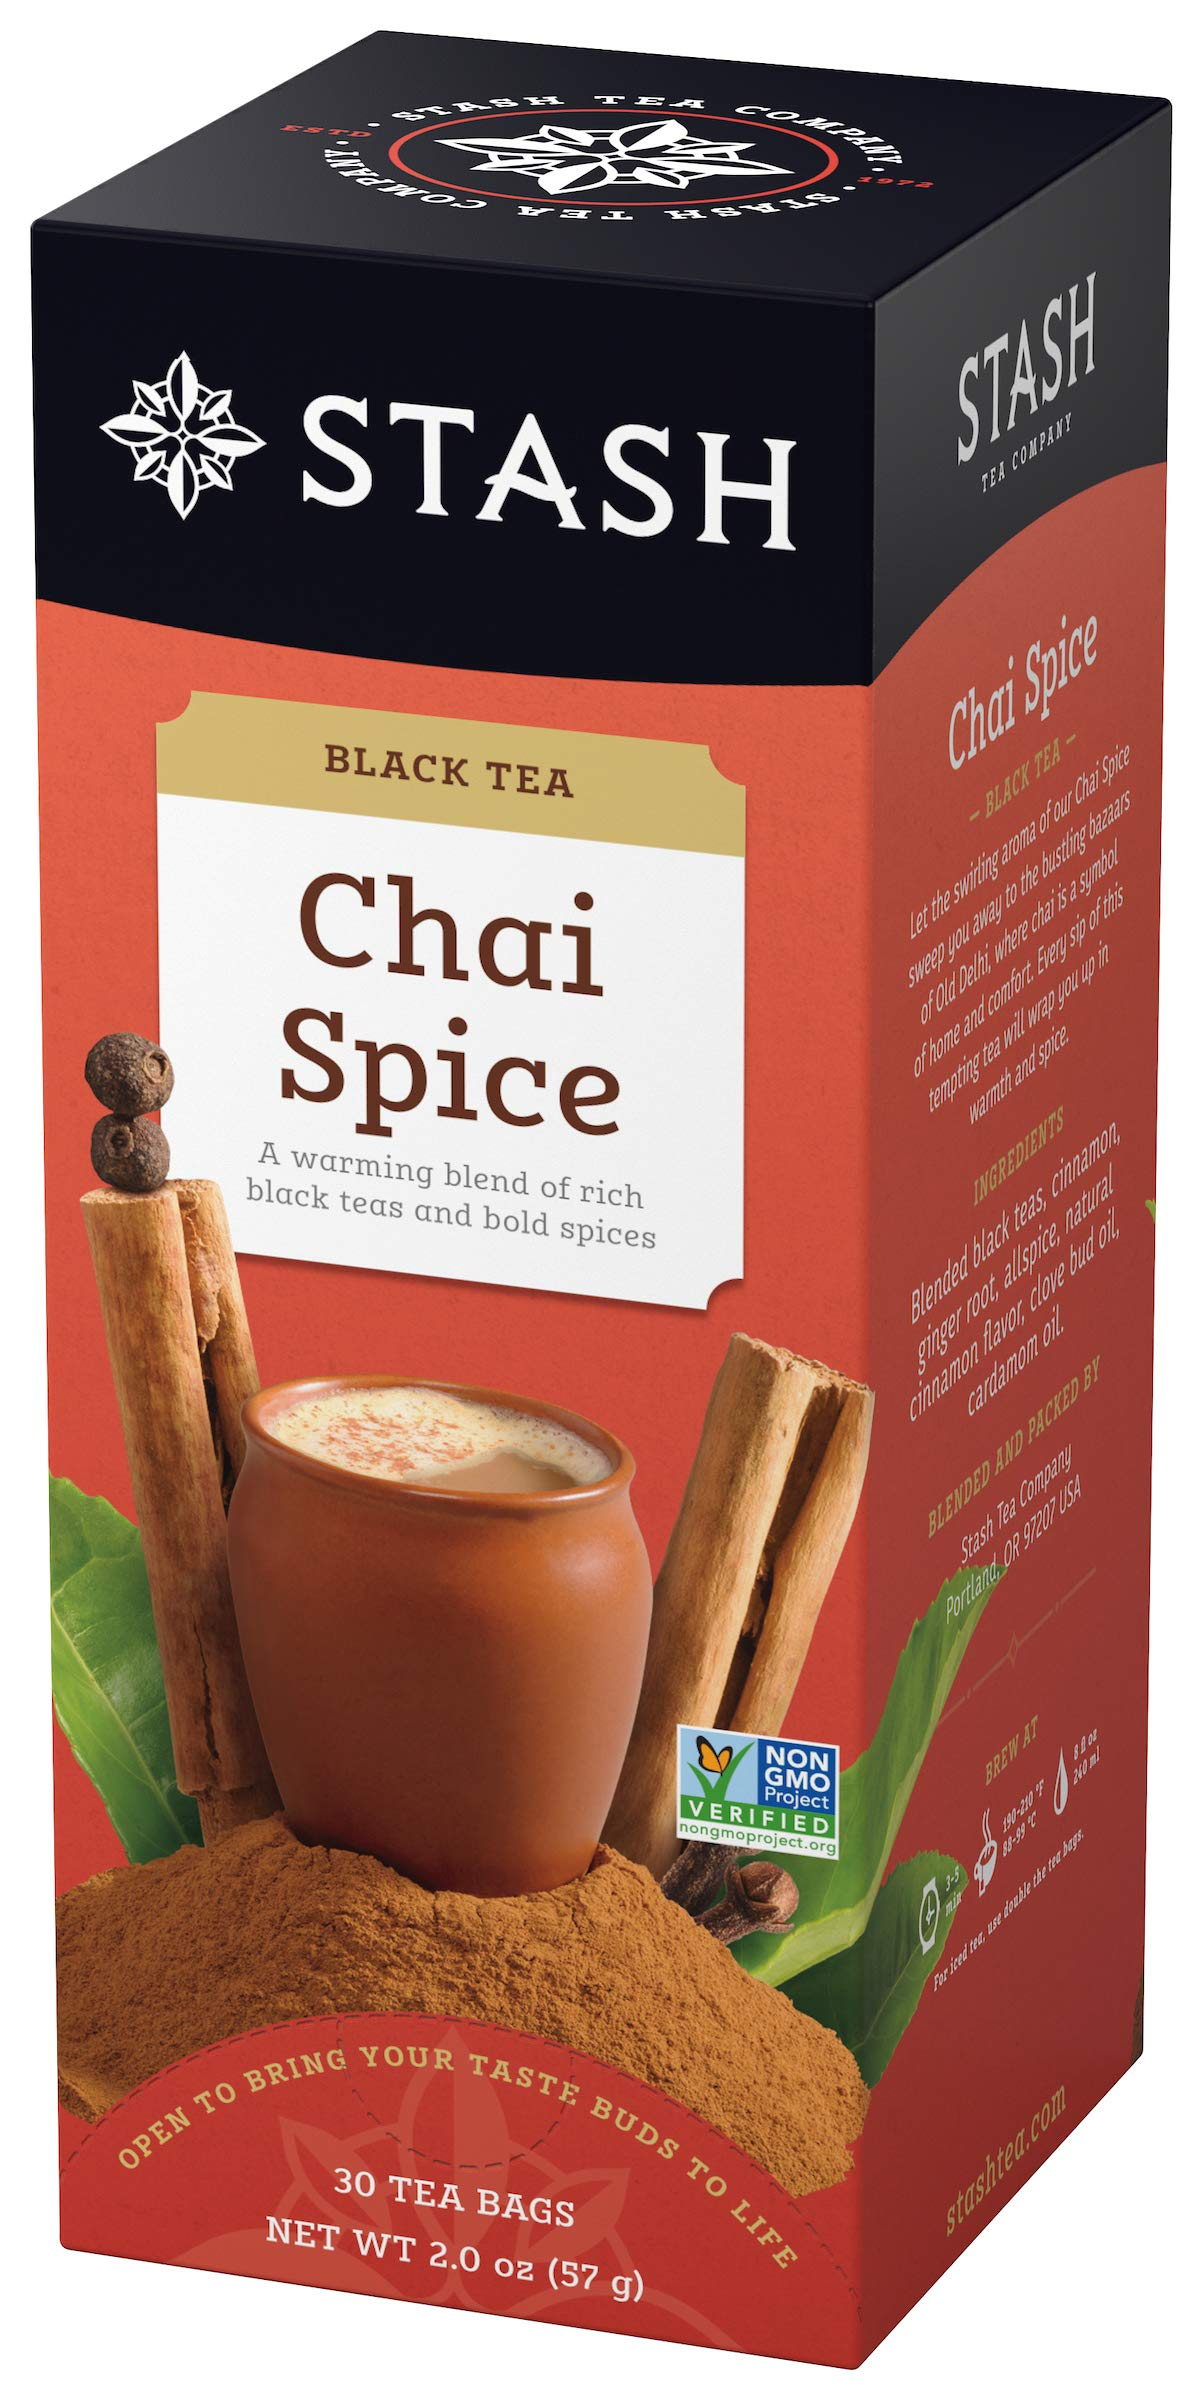 Stash Tea Chai Spice Black Tea 30 Count Tea Bags in Foil (Pack of 6), Tea Bags Individually Wrapped in Foil, Premium Black Tea Blended with Invigorating, Warming Spices, Drink Hot or Iced